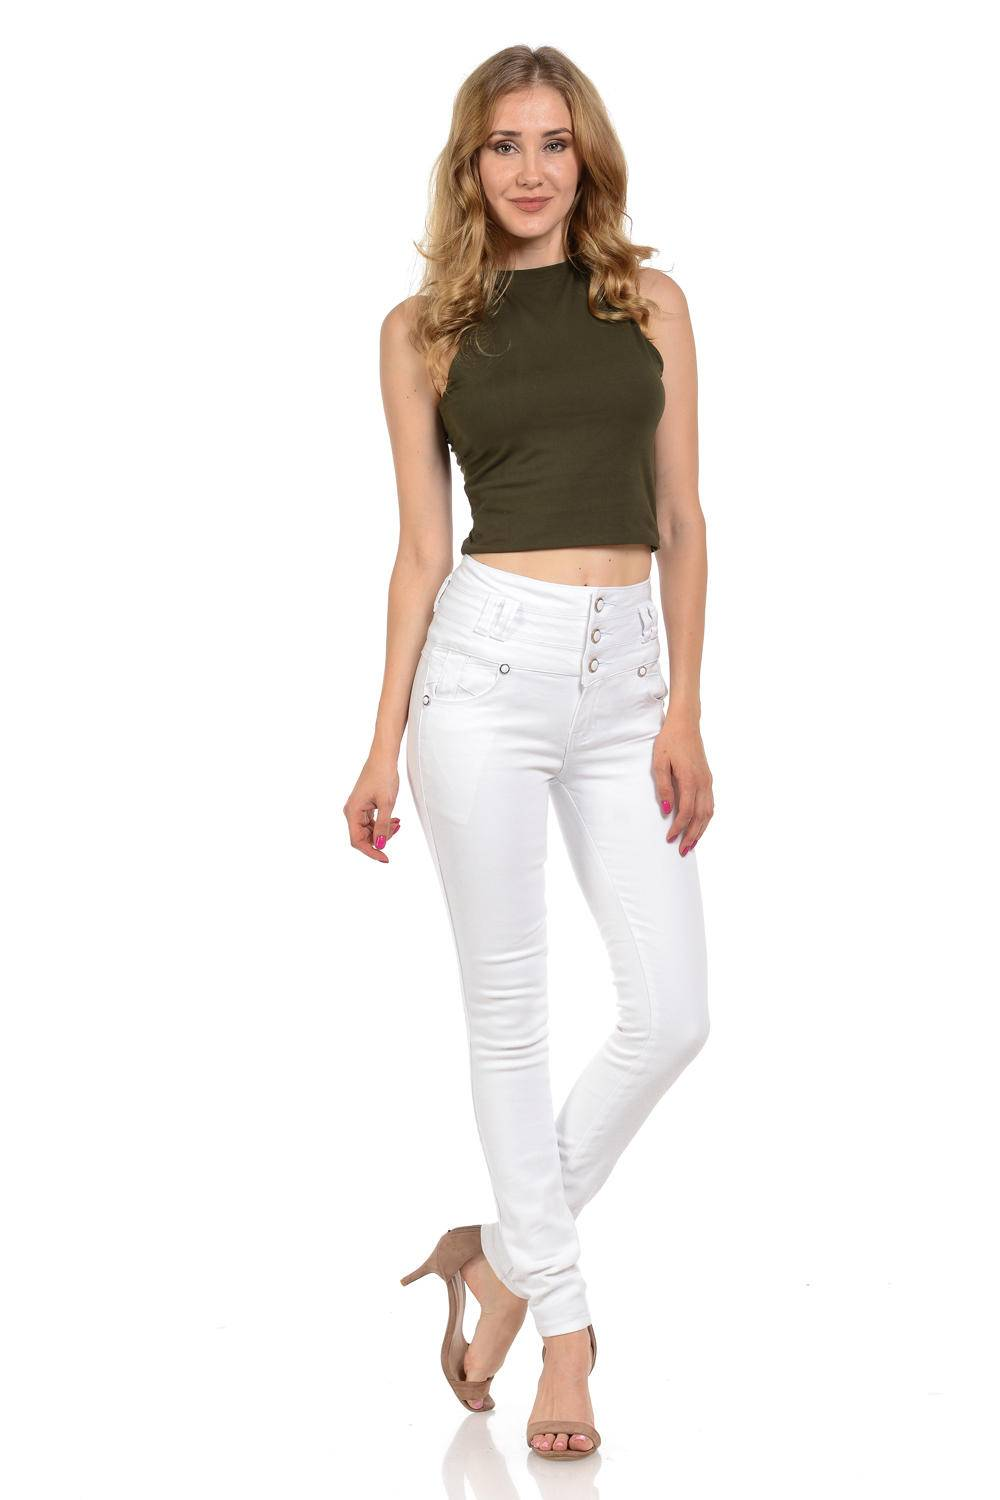 Pasion Womens Jeans /· Push Up /· Style N3005